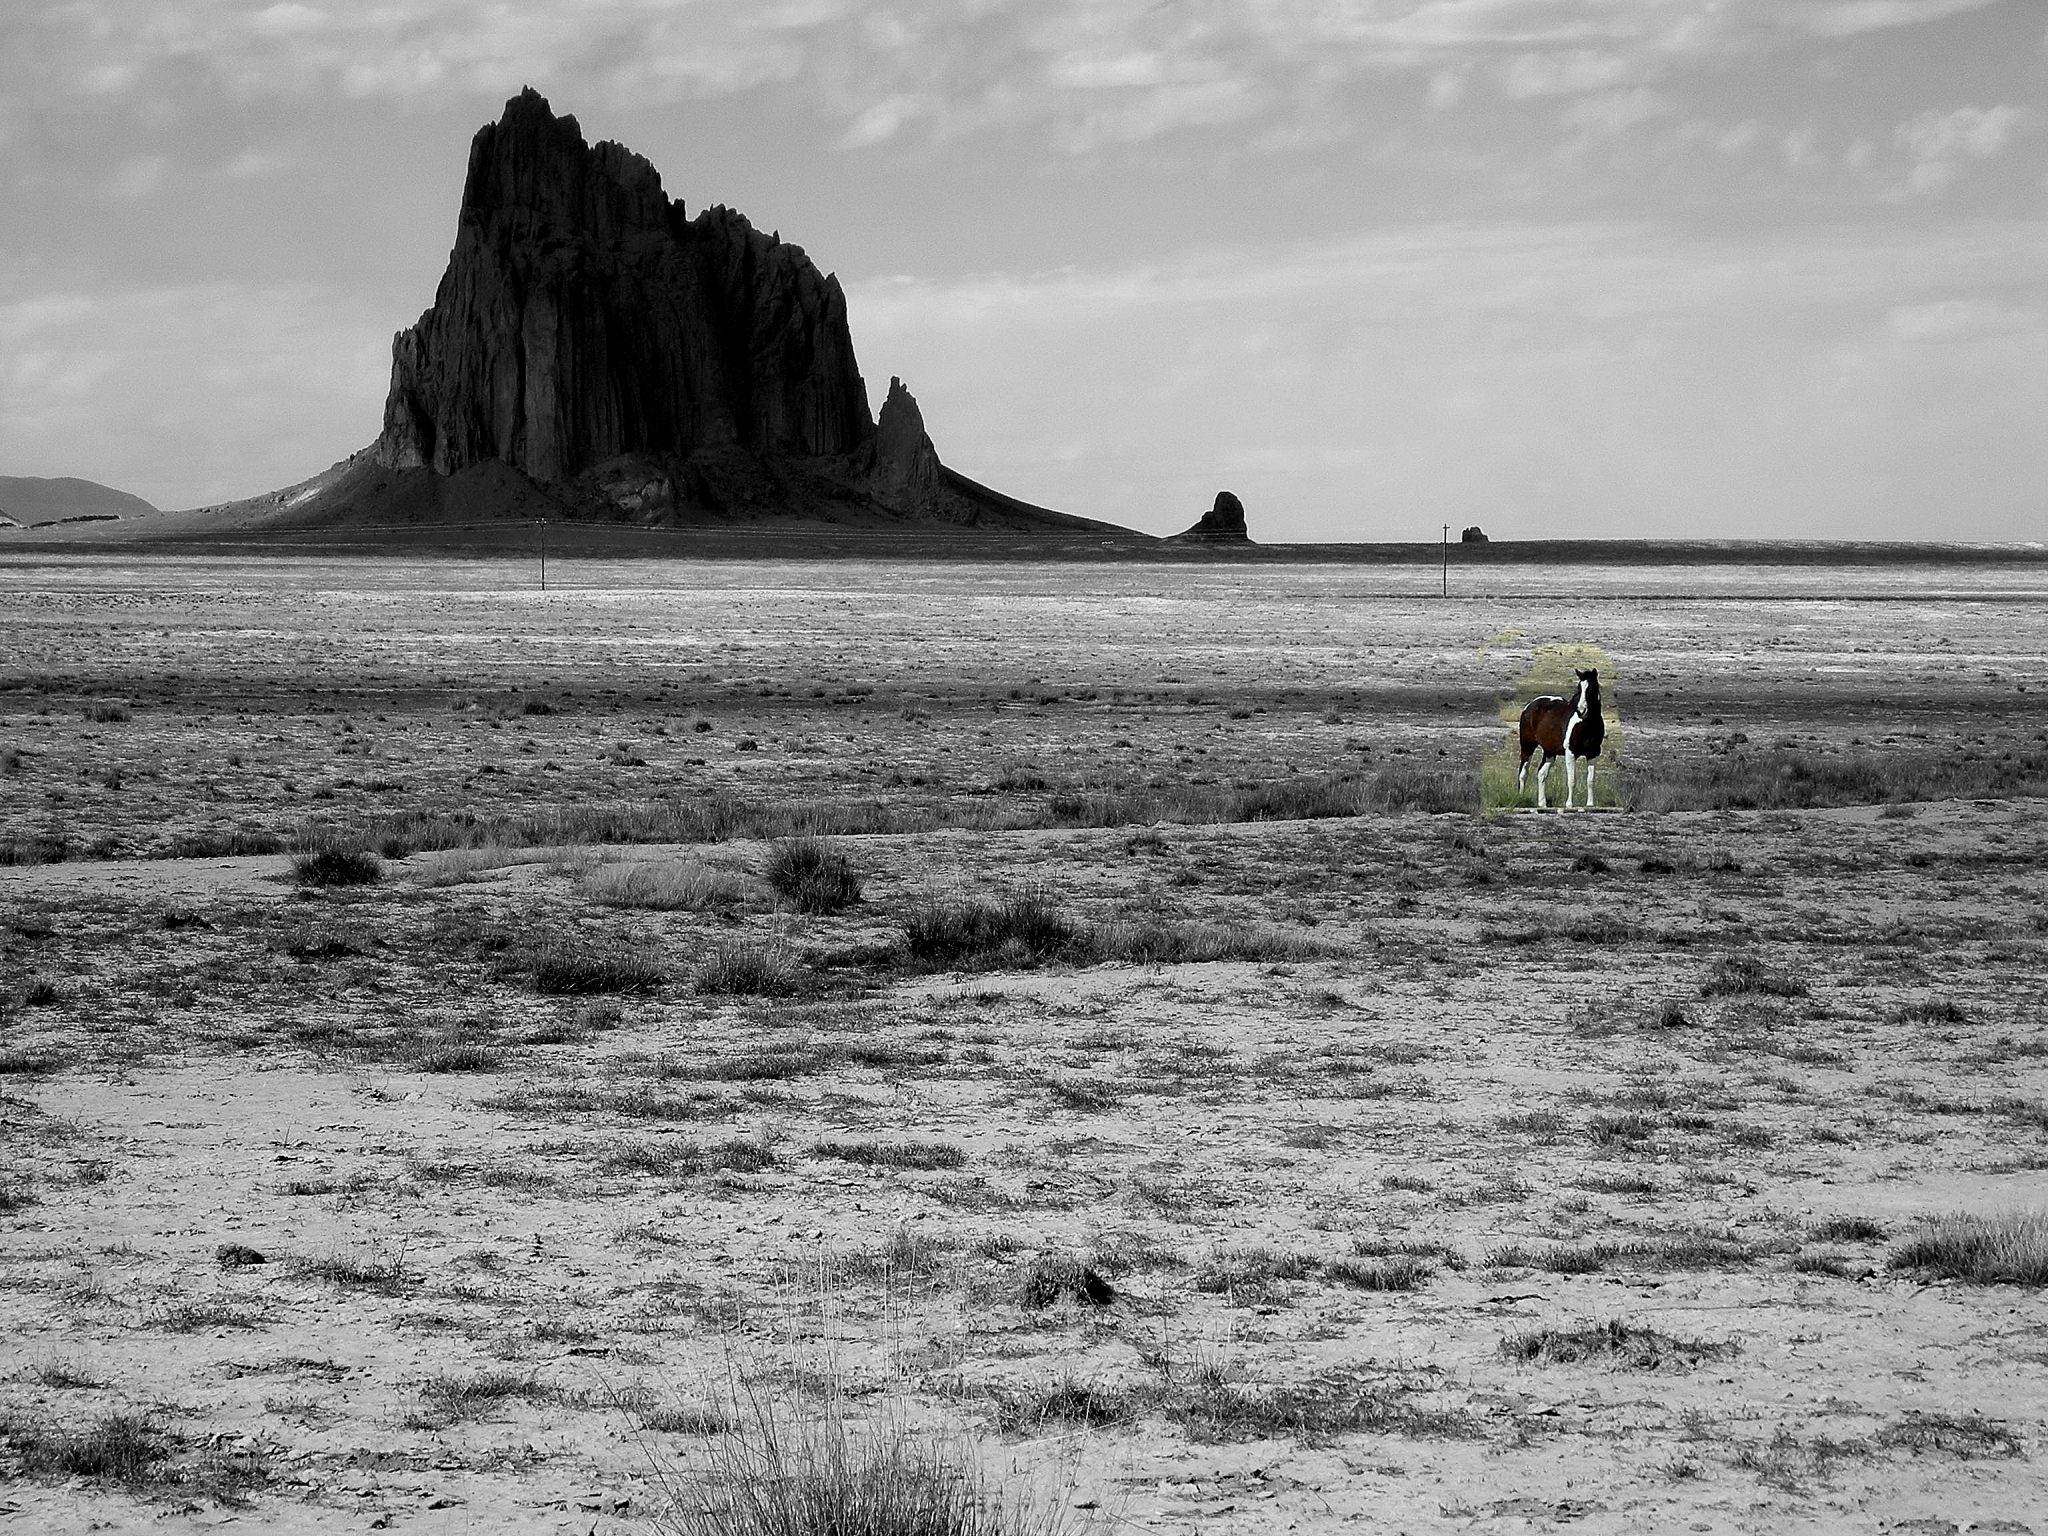 My photo of Shiprock, New Mexico